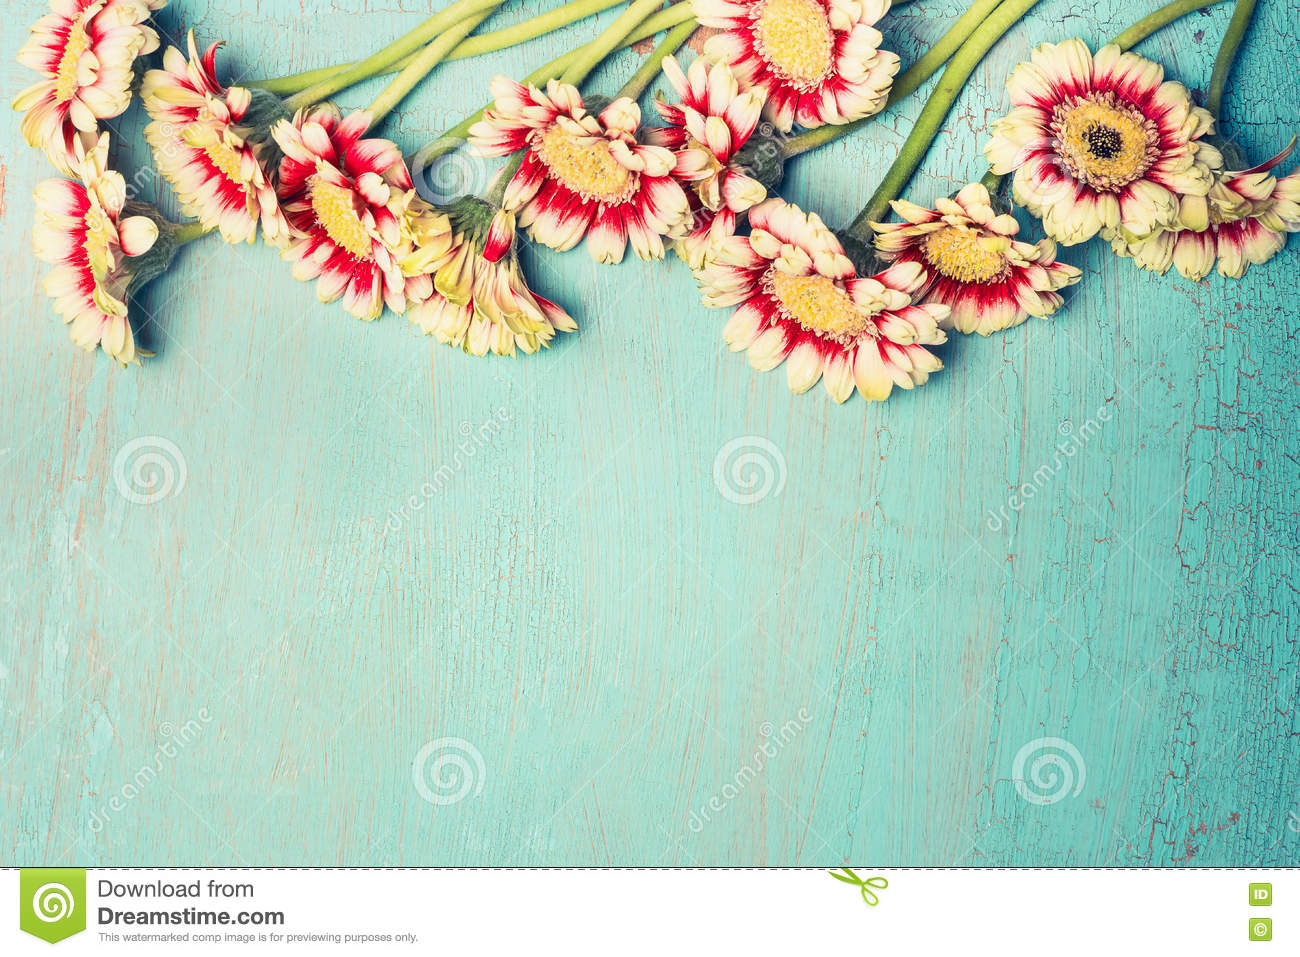 Pretty Daisies Or Gerbera Flowers On Turquoise Blue Shabby Chic Background Top View Border